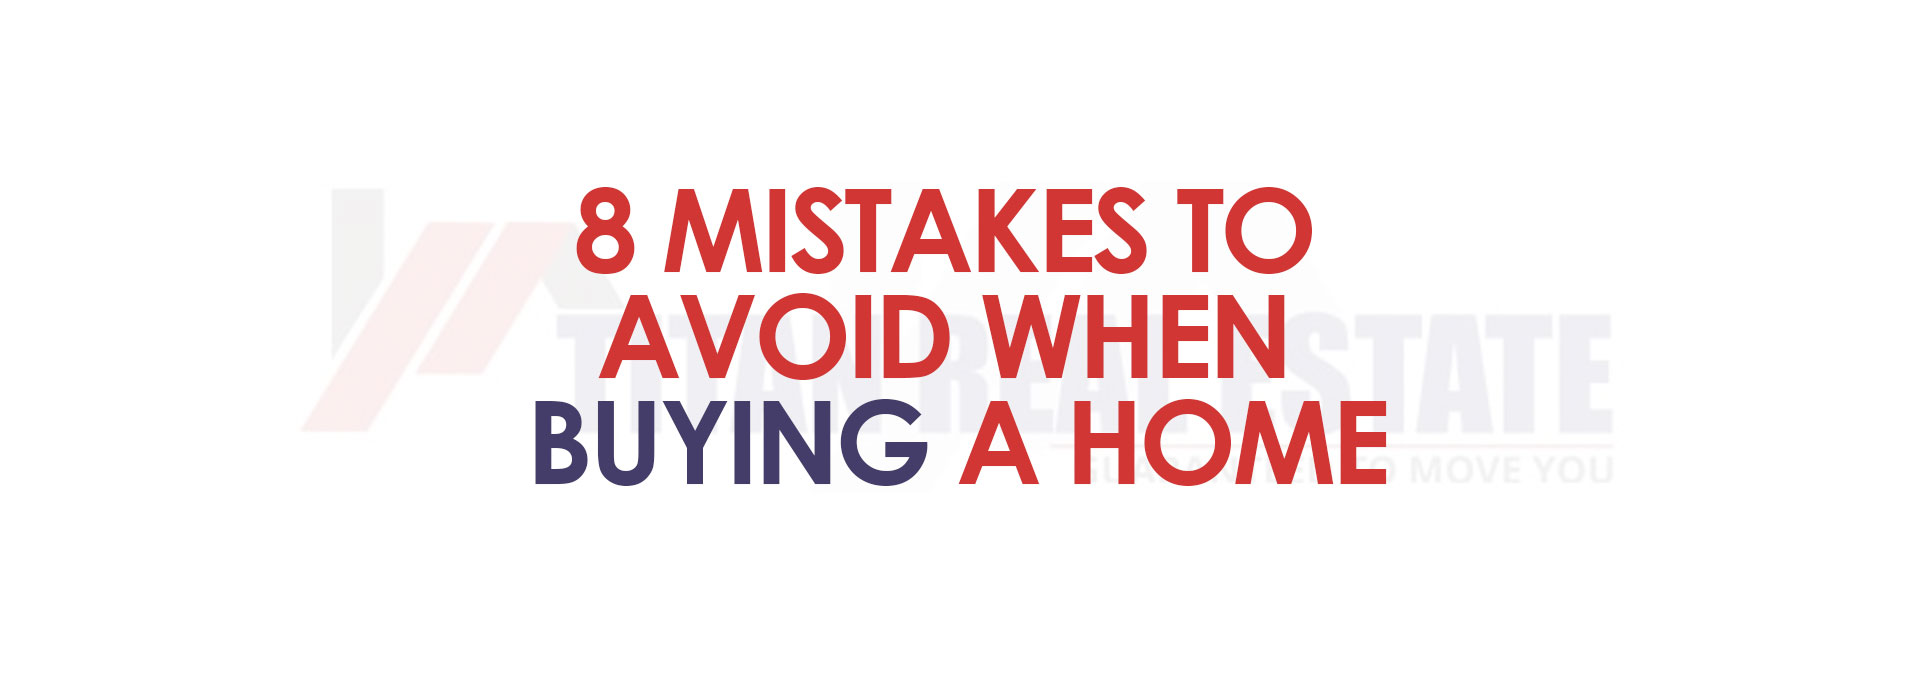 8 MISTAKES TO AVOID WHEN BUYING A HOME